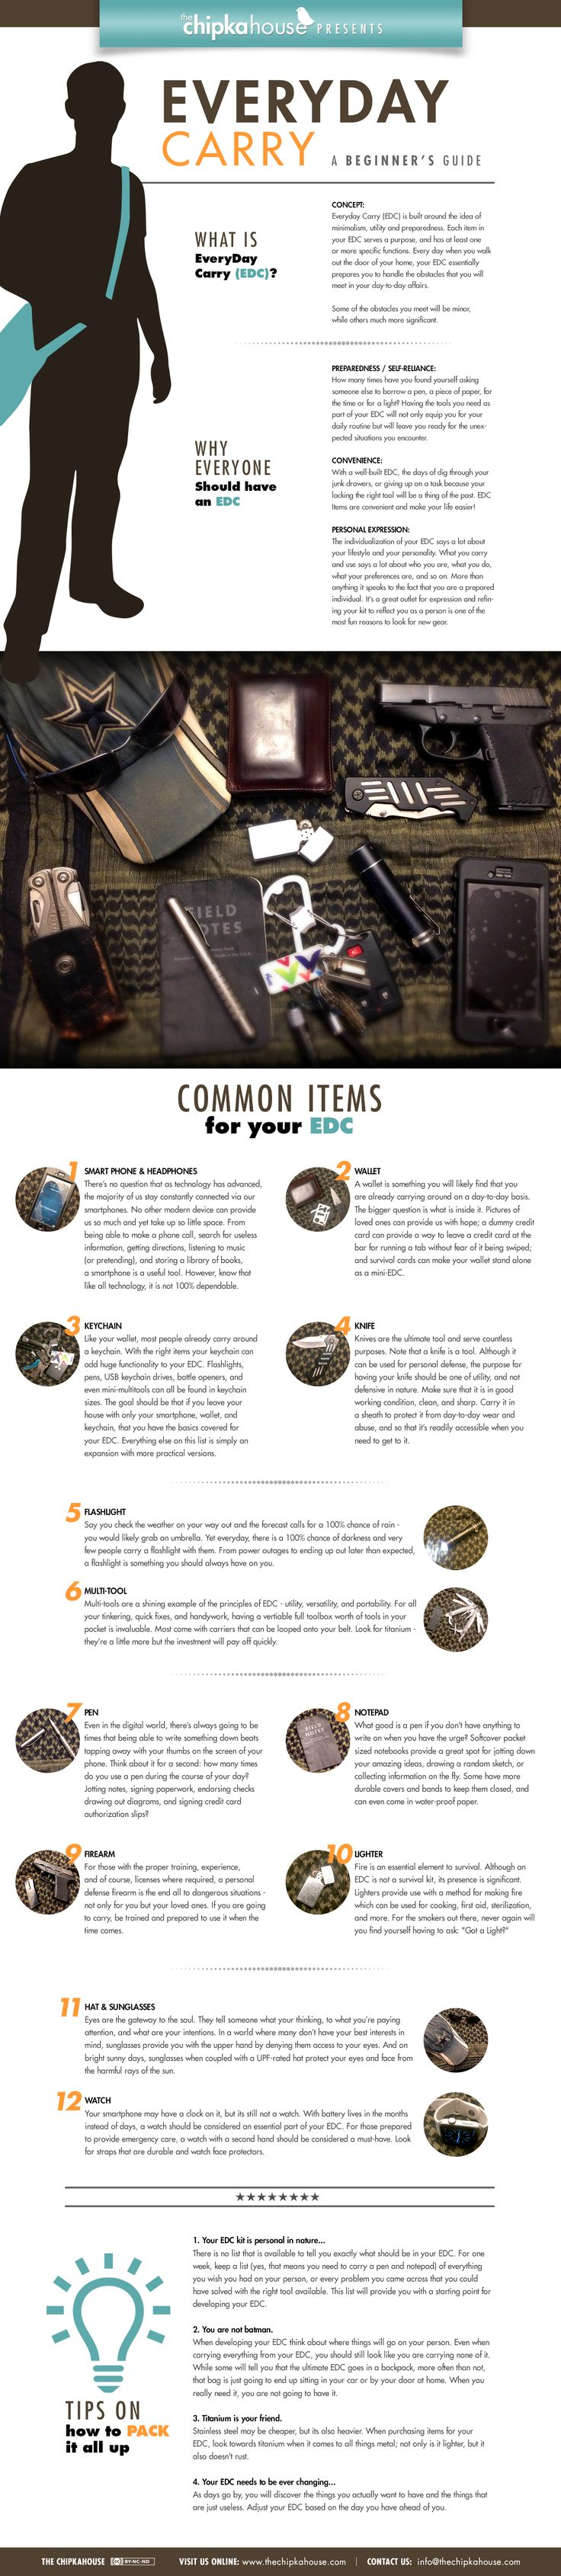 Everyday Carry Guide - Infographic by me! (article by my husband)